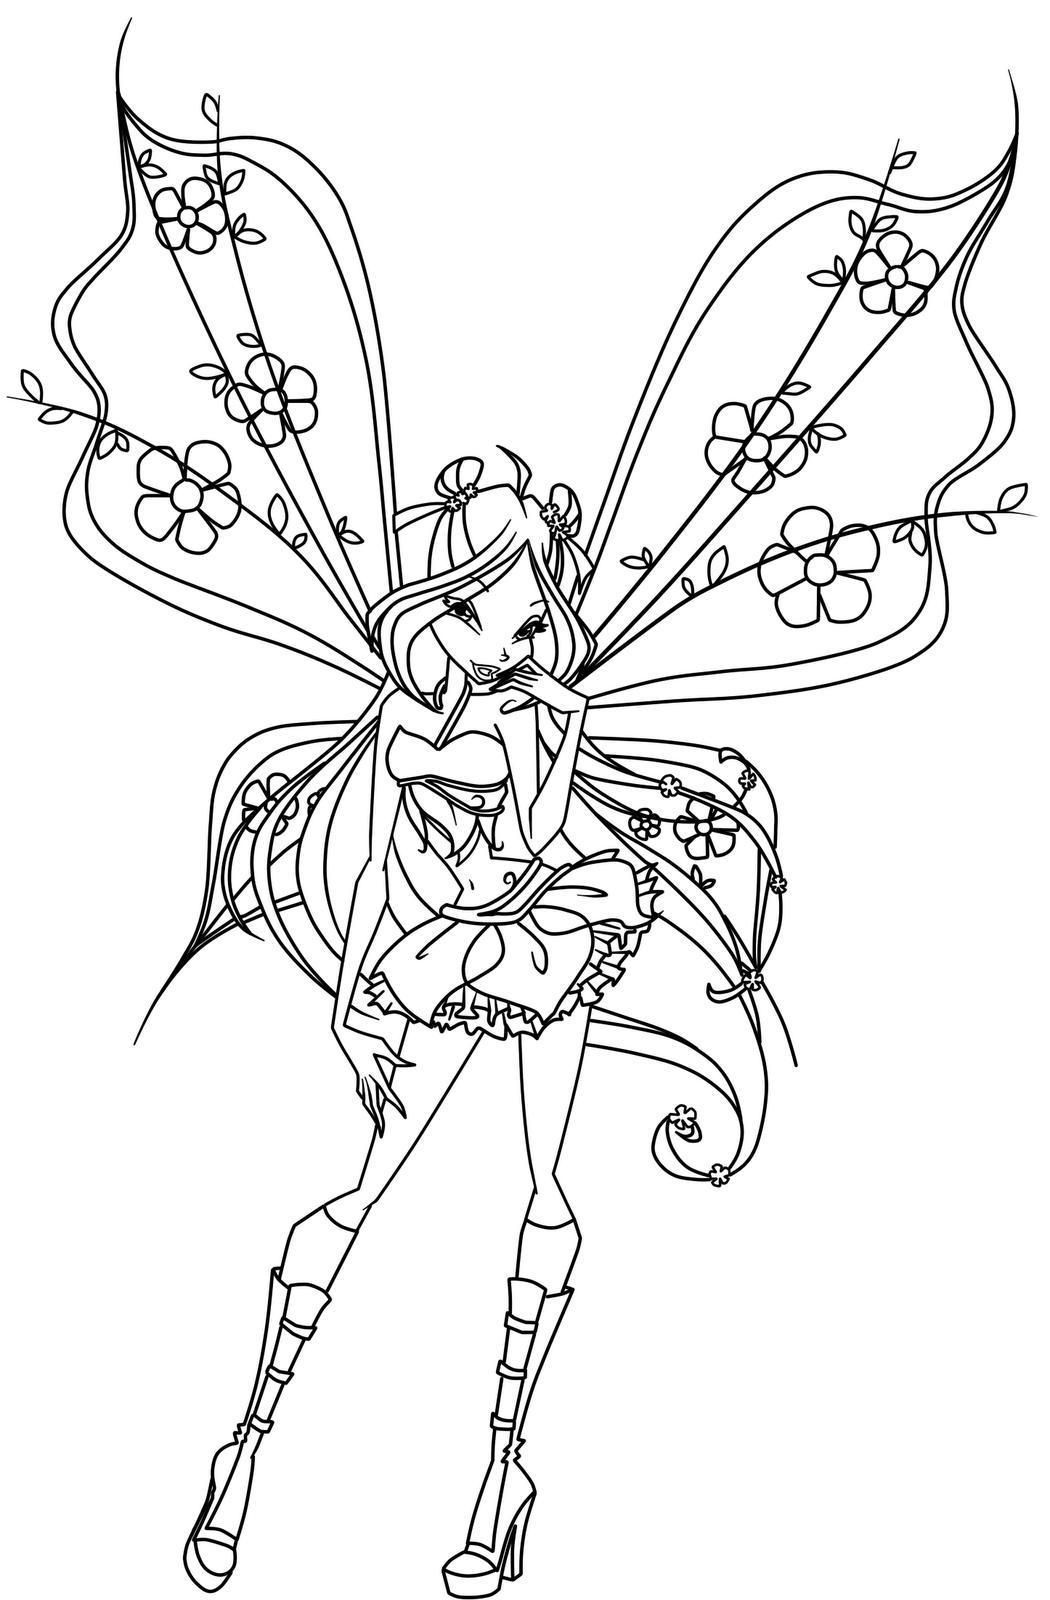 The Winx Club Photo Coloring Pages Fairy Coloring Pages Fairy Coloring Fairy Coloring Book